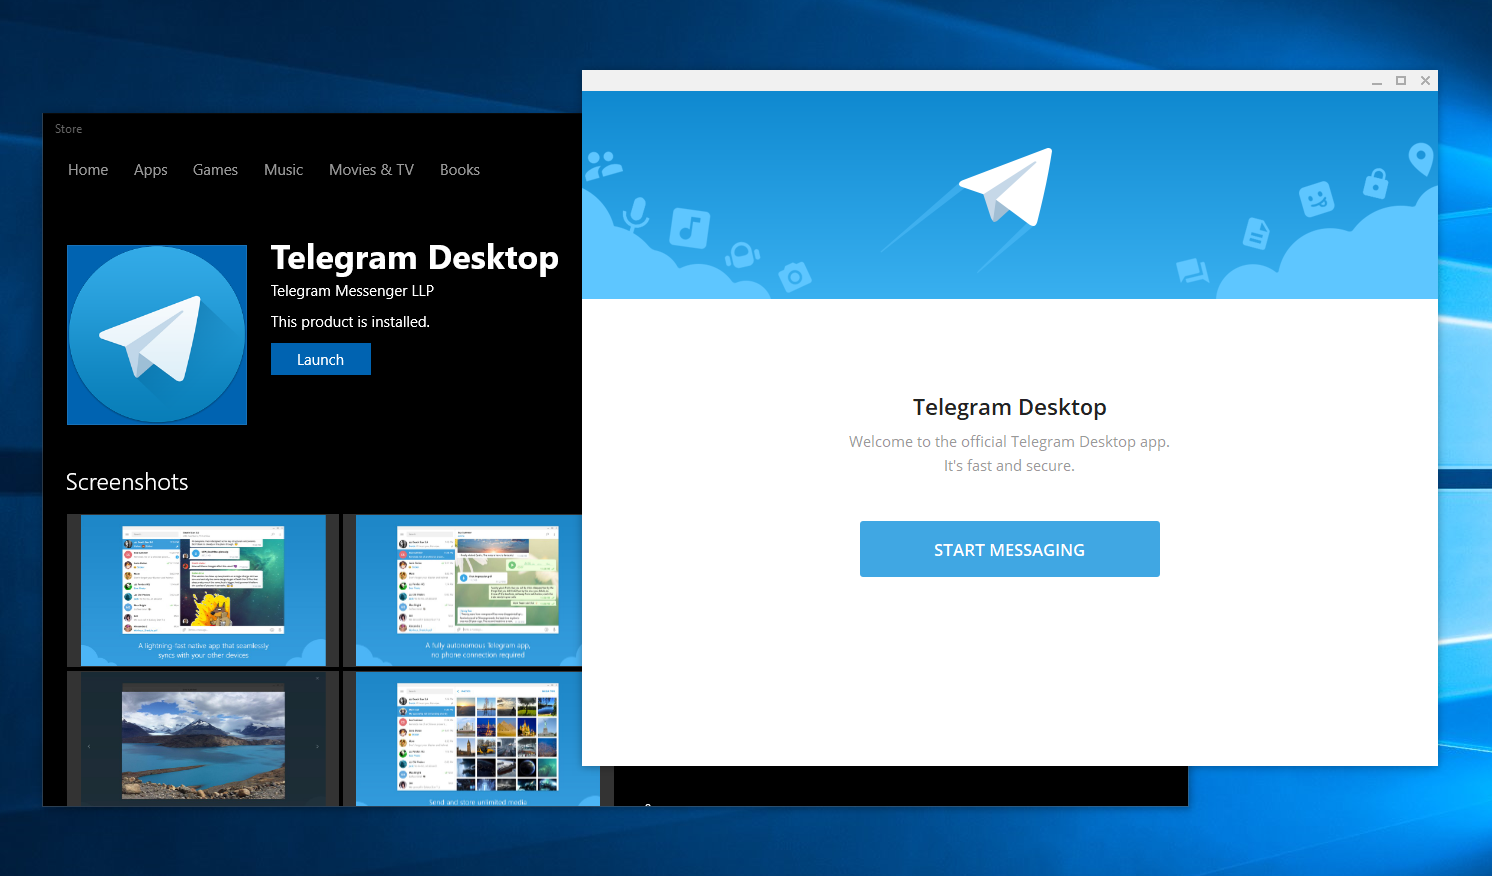 photo of Telegram desktop app updated with new background feature image